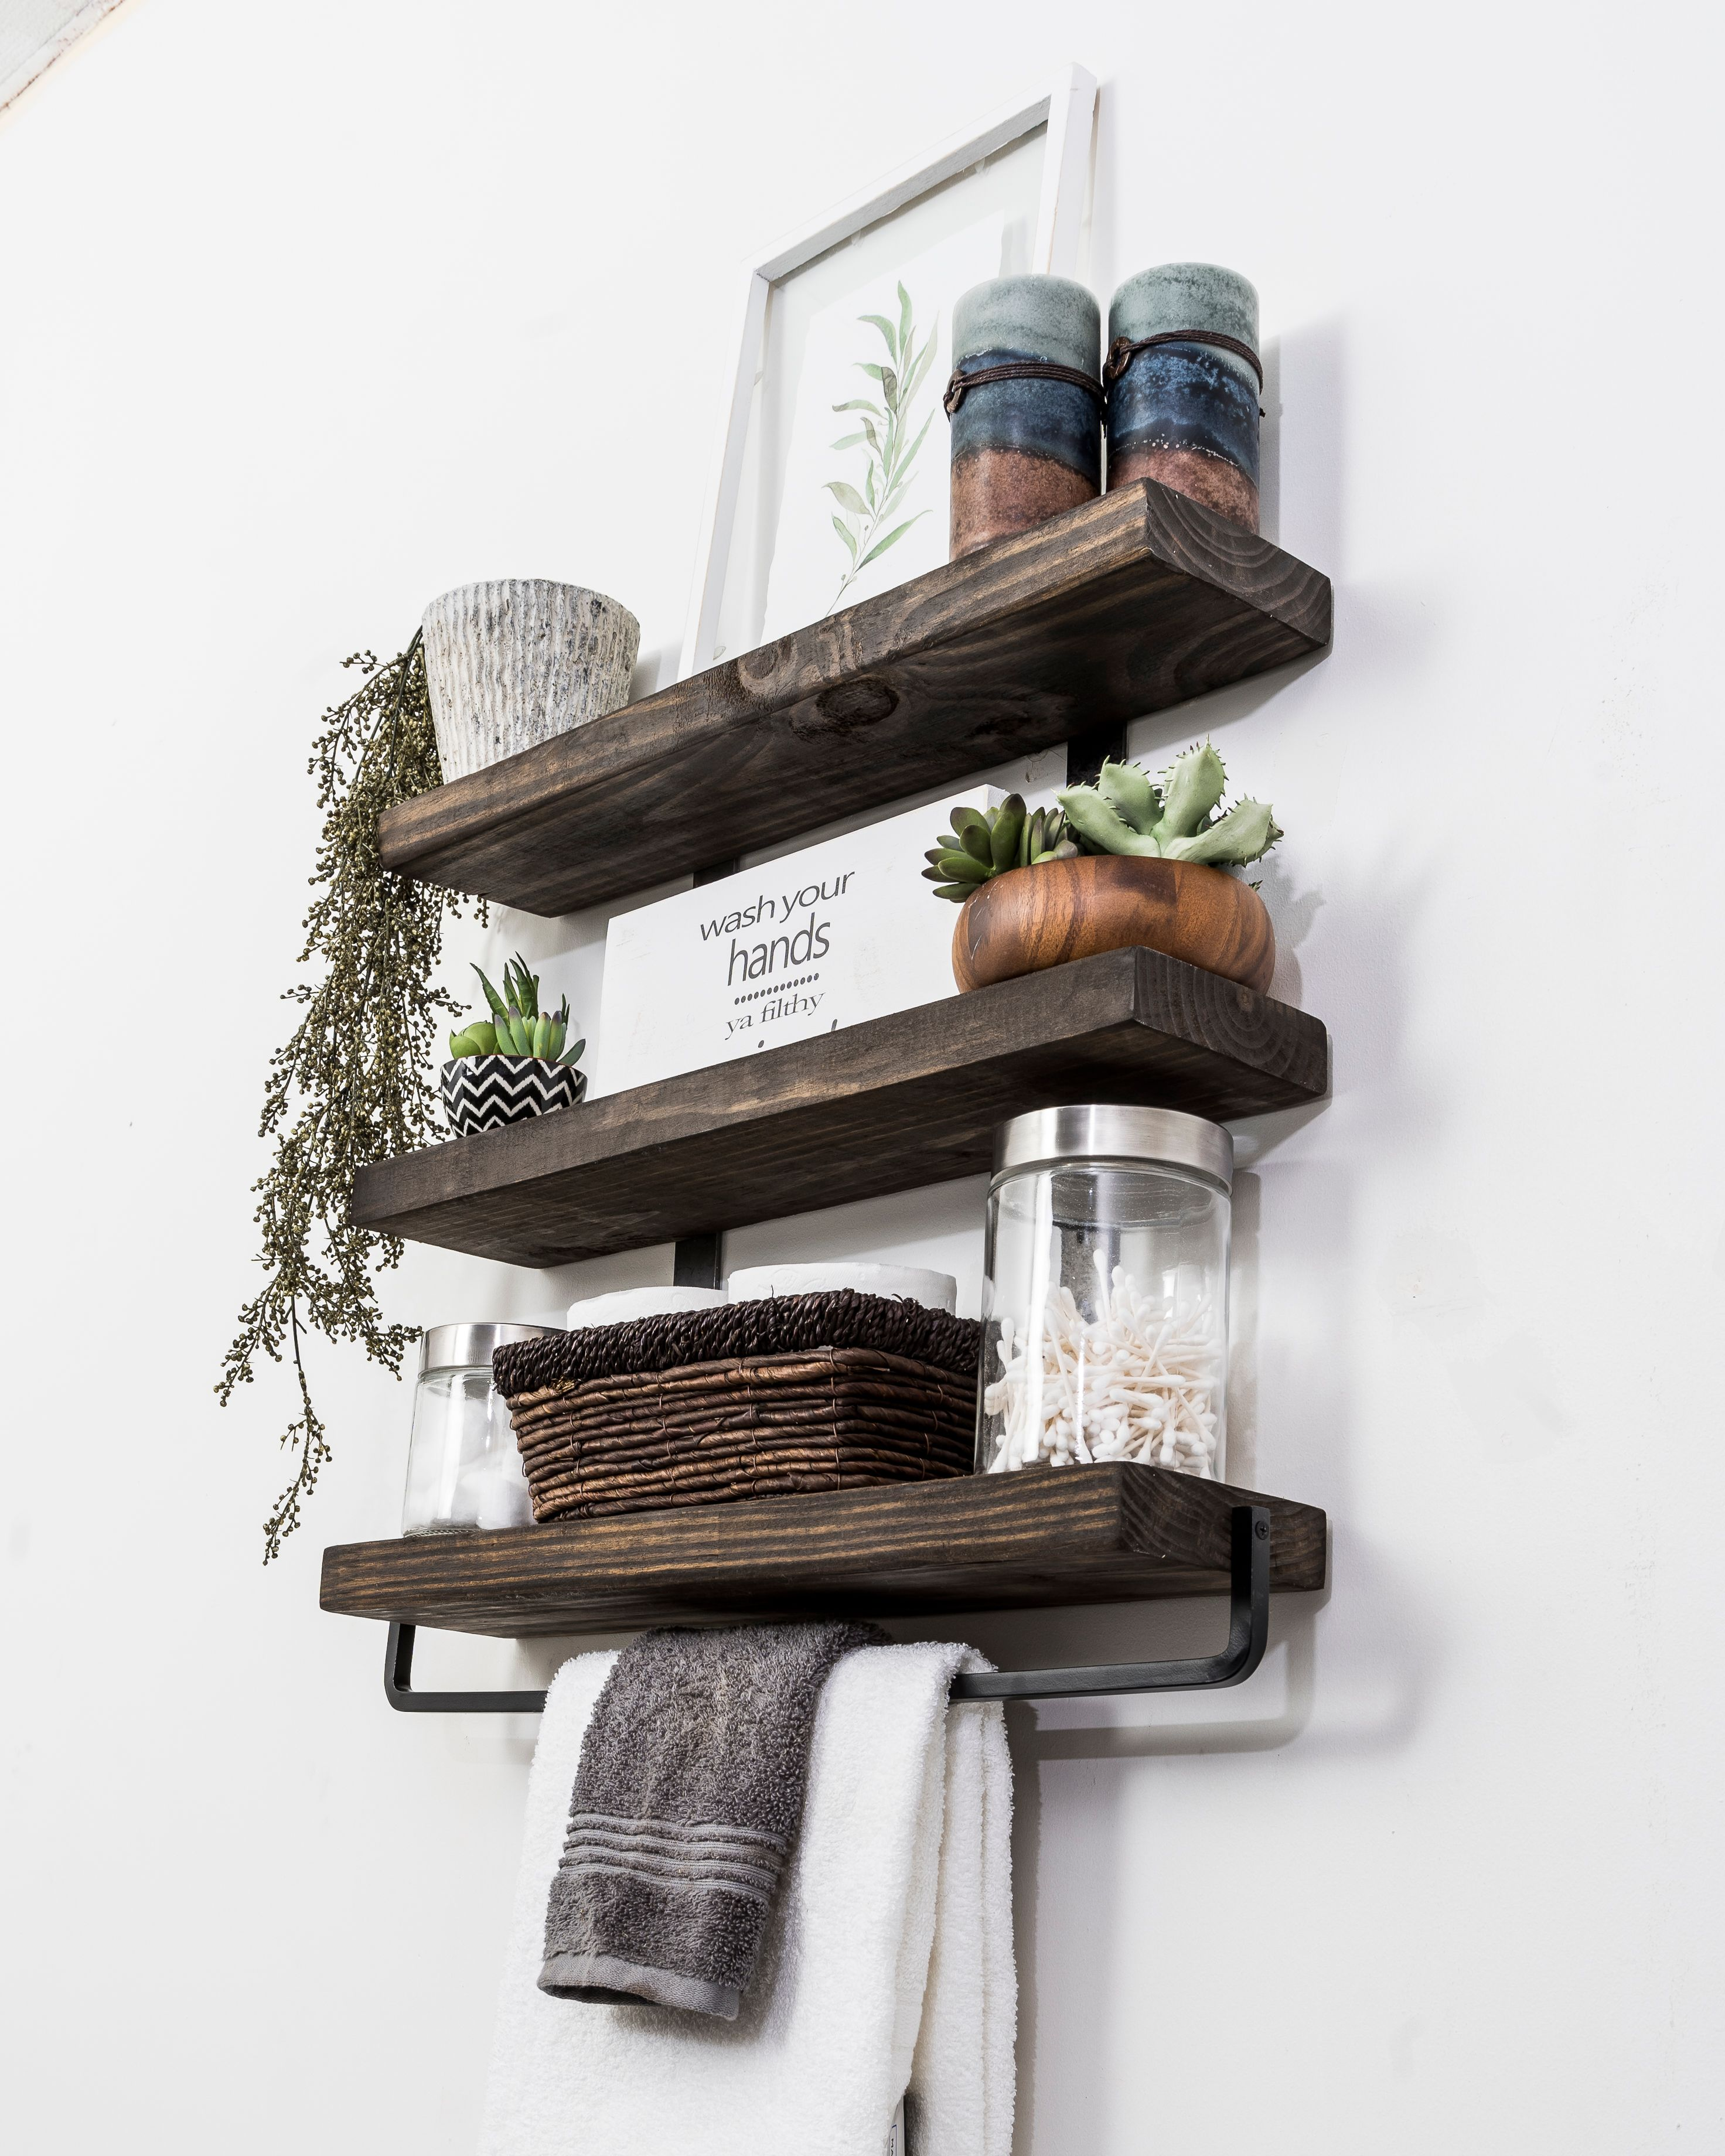 Surprising Industrial 3 Tier Floating Shelf With Towel Bar 24 Download Free Architecture Designs Rallybritishbridgeorg